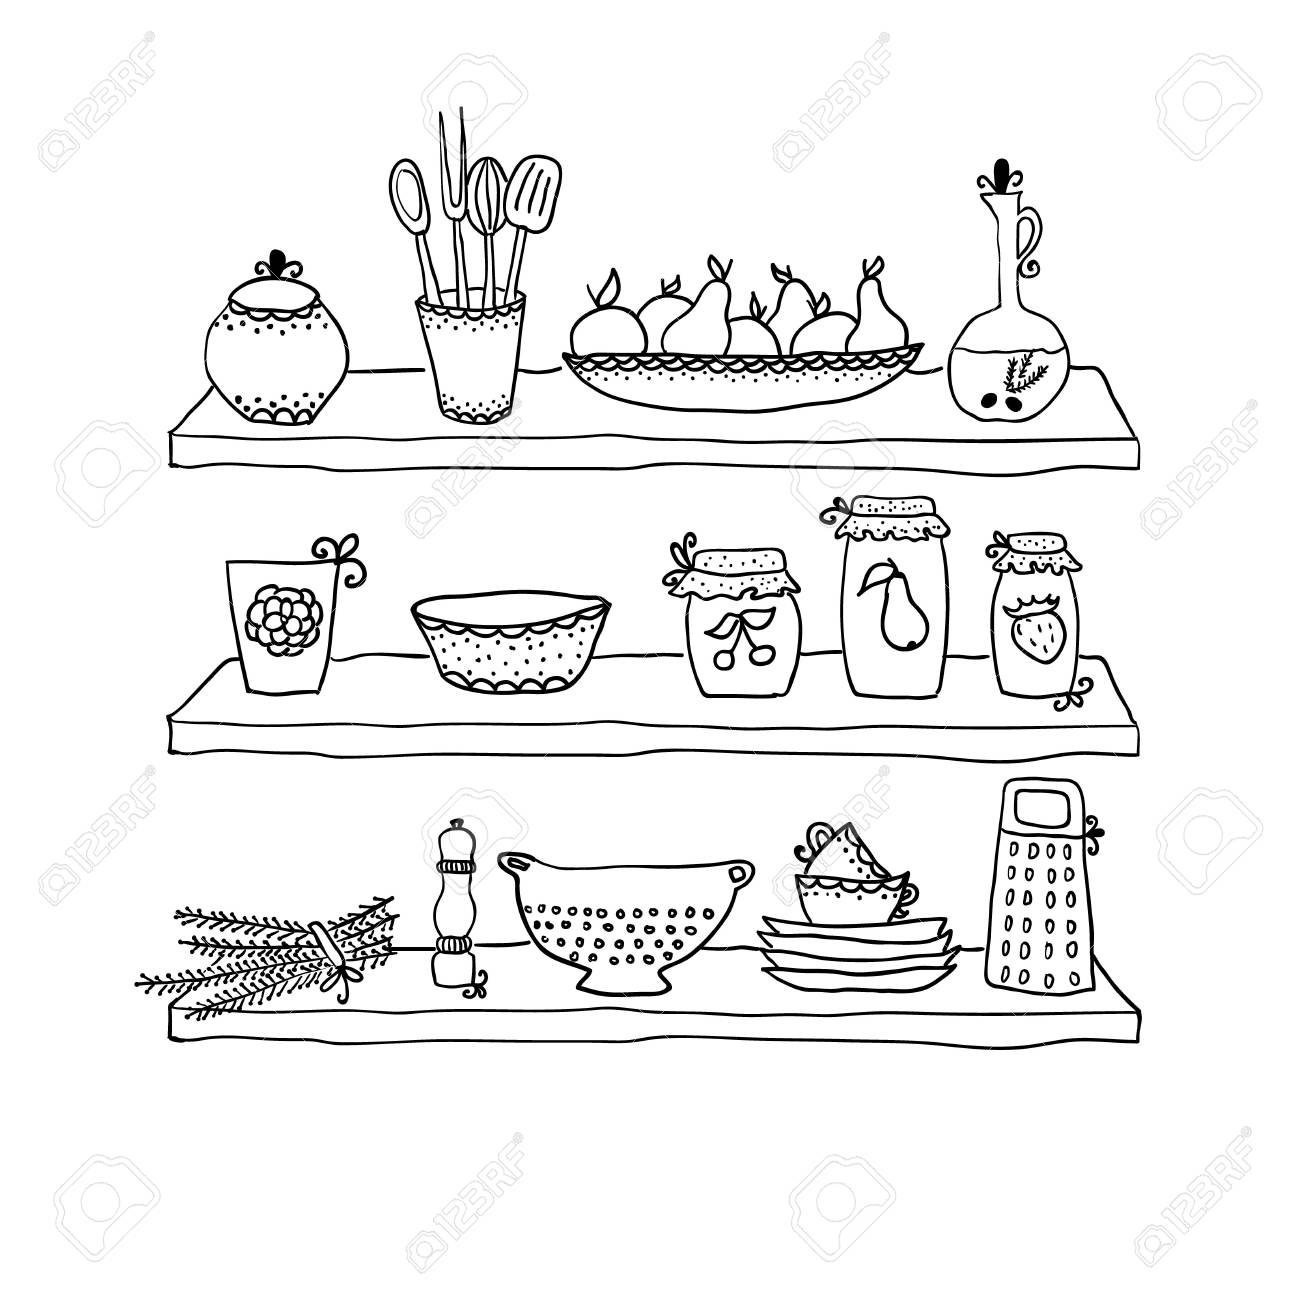 Kitchen Utensils On Shelves Sketch Drawing Stock Vector